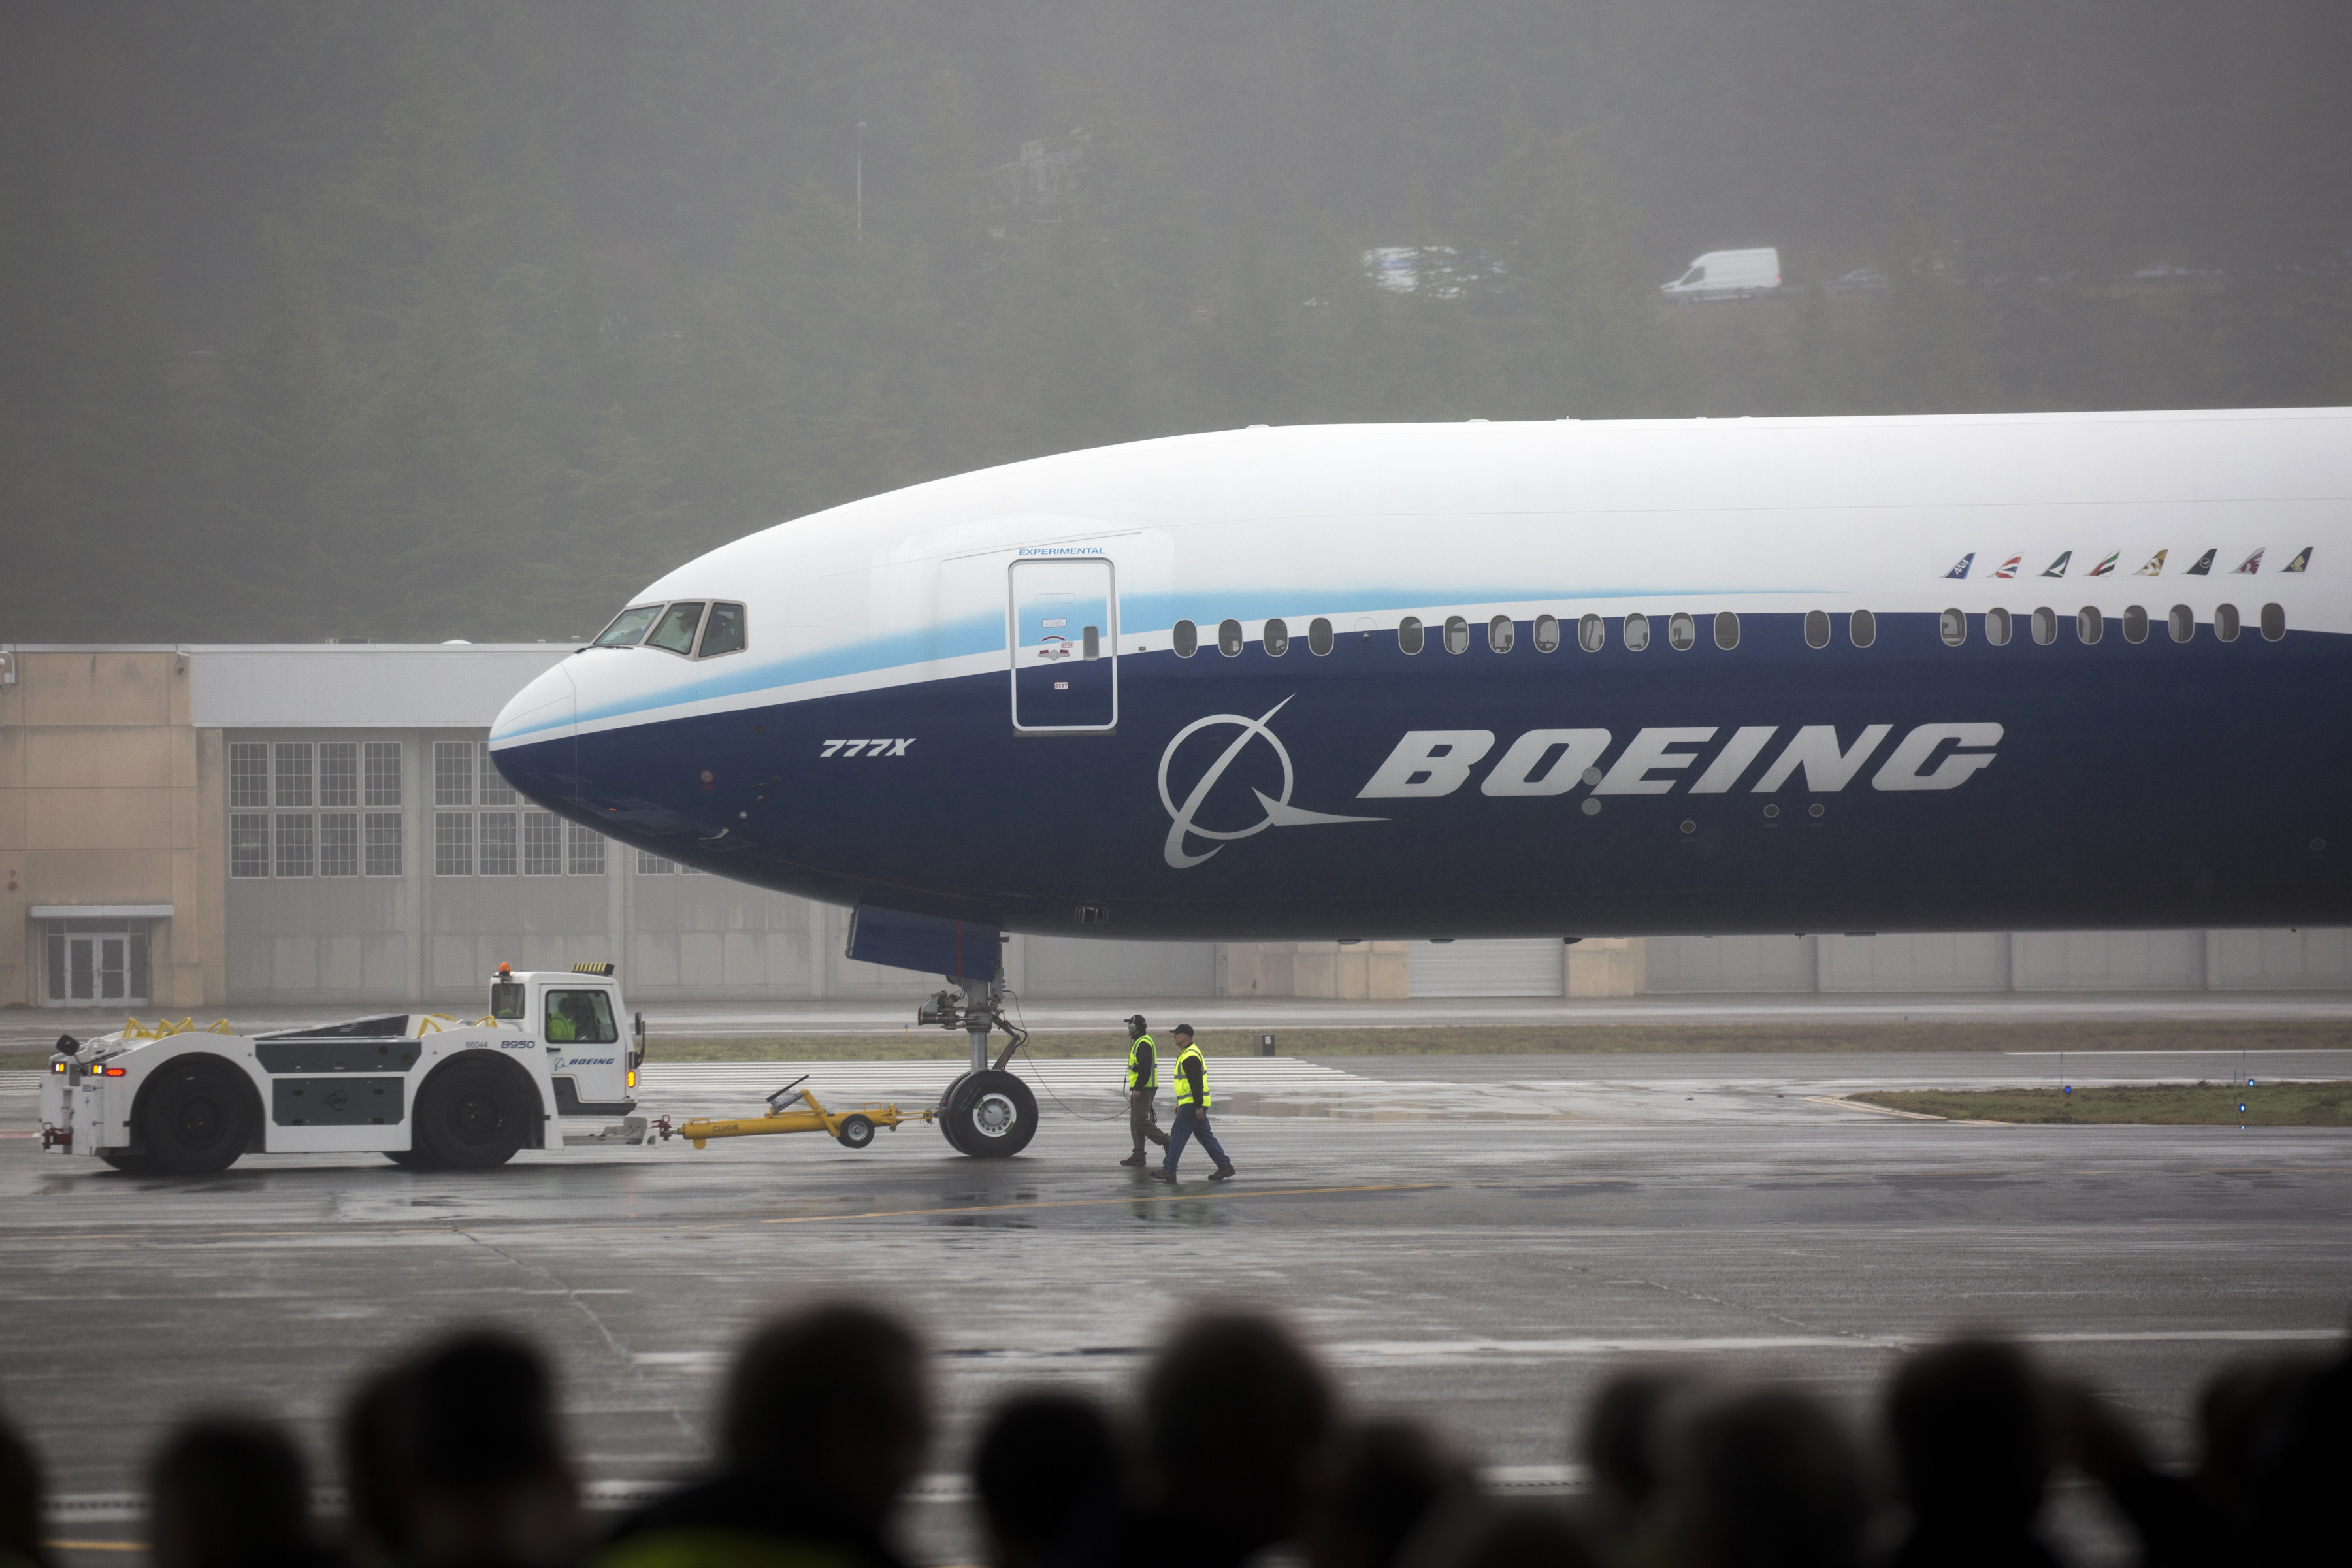 A Boeing 777X airplane returns from its inaugural flight at Boeing Field in Seattle, Washington, on January 25, 2020.